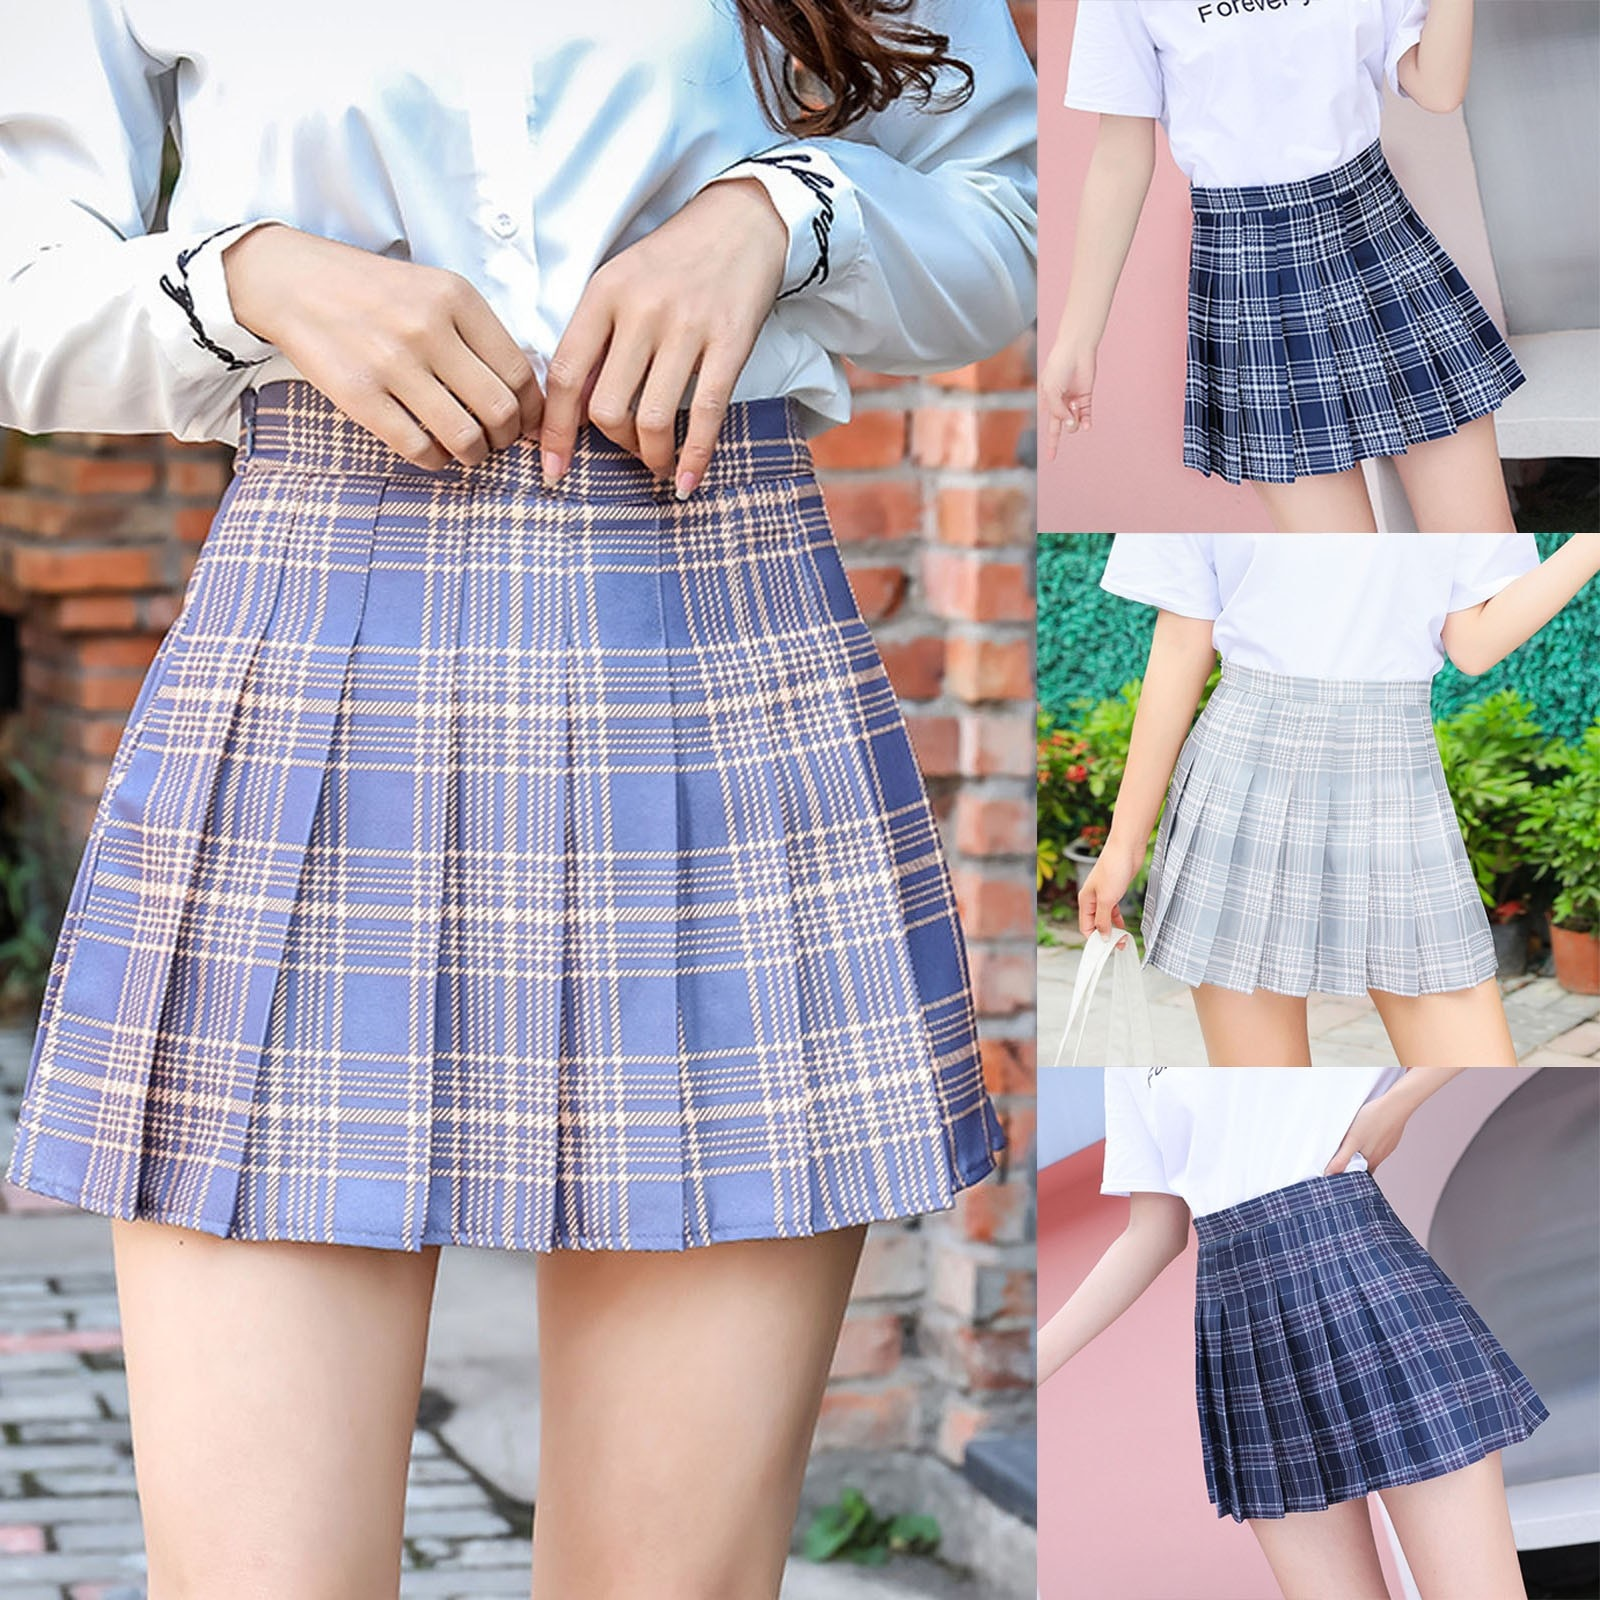 2021 Women Skirts Student High Waist Chain A-Line Pleated Skirt Natural Preppy Style Commute Mujer F